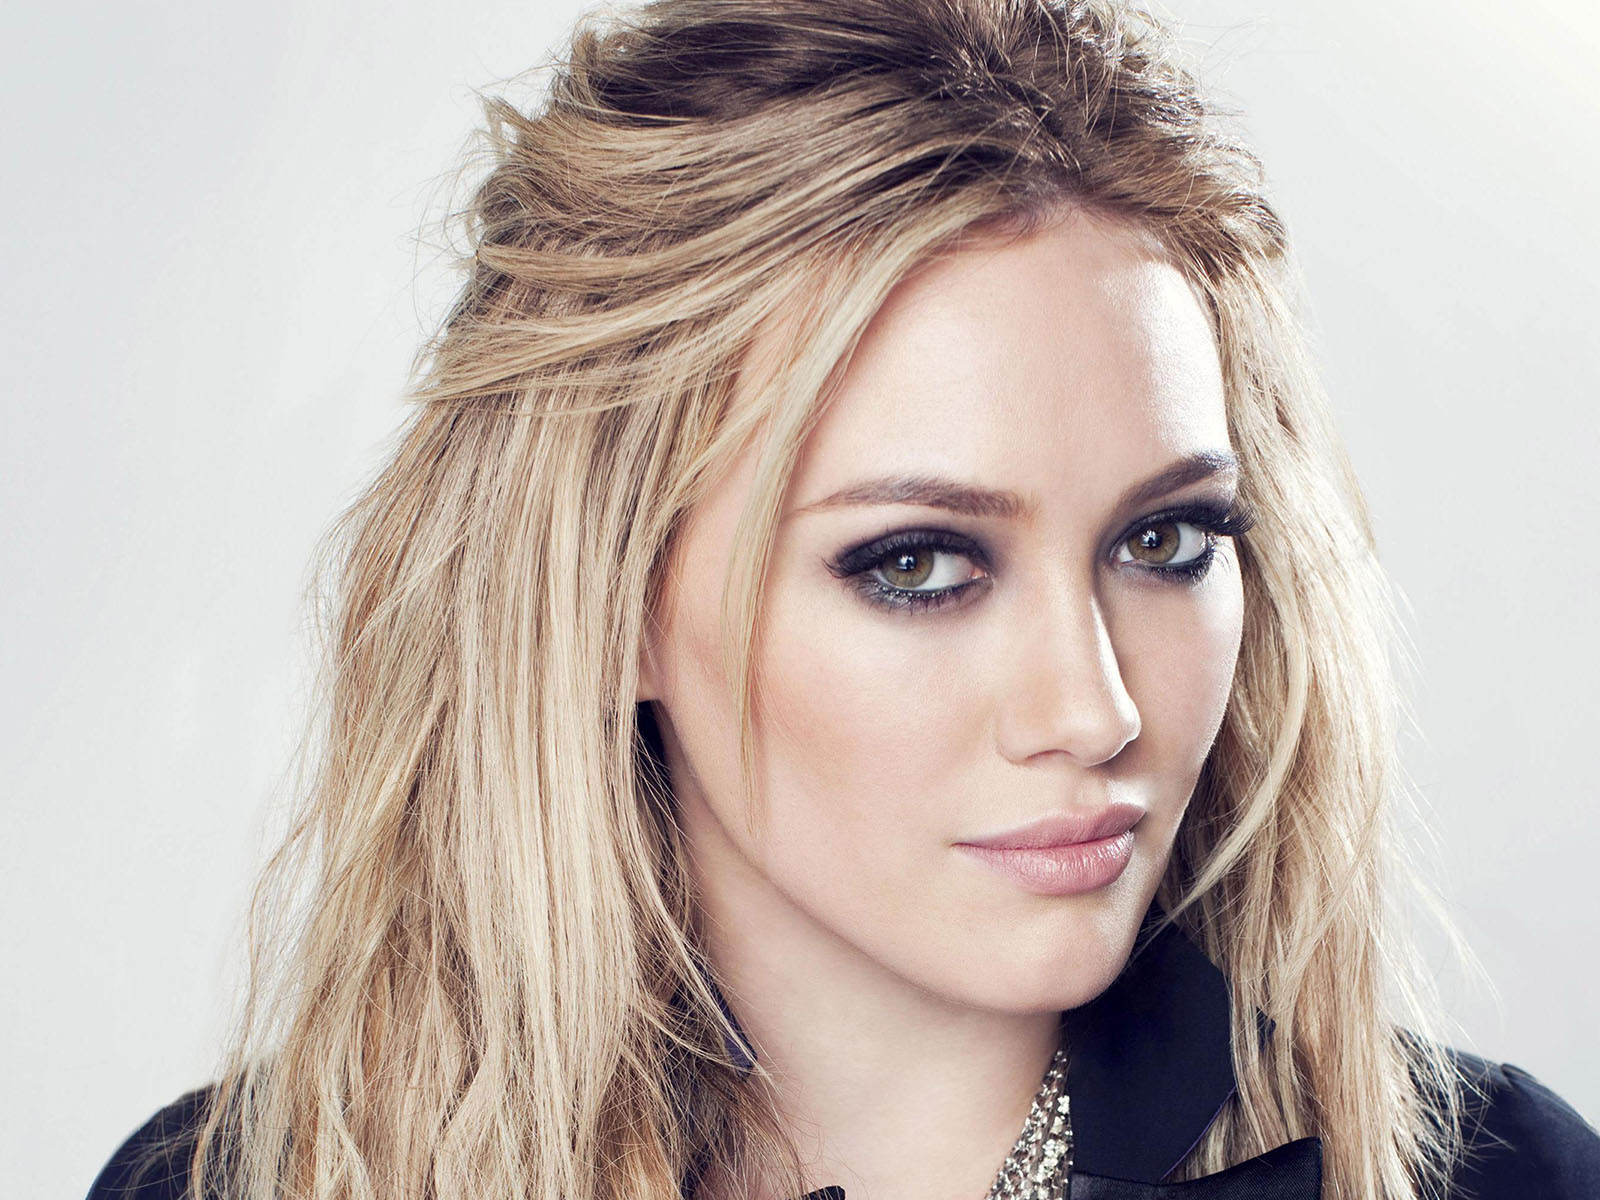 hd hilary duff stunning hot eye look pose free background download laptop wallpaper